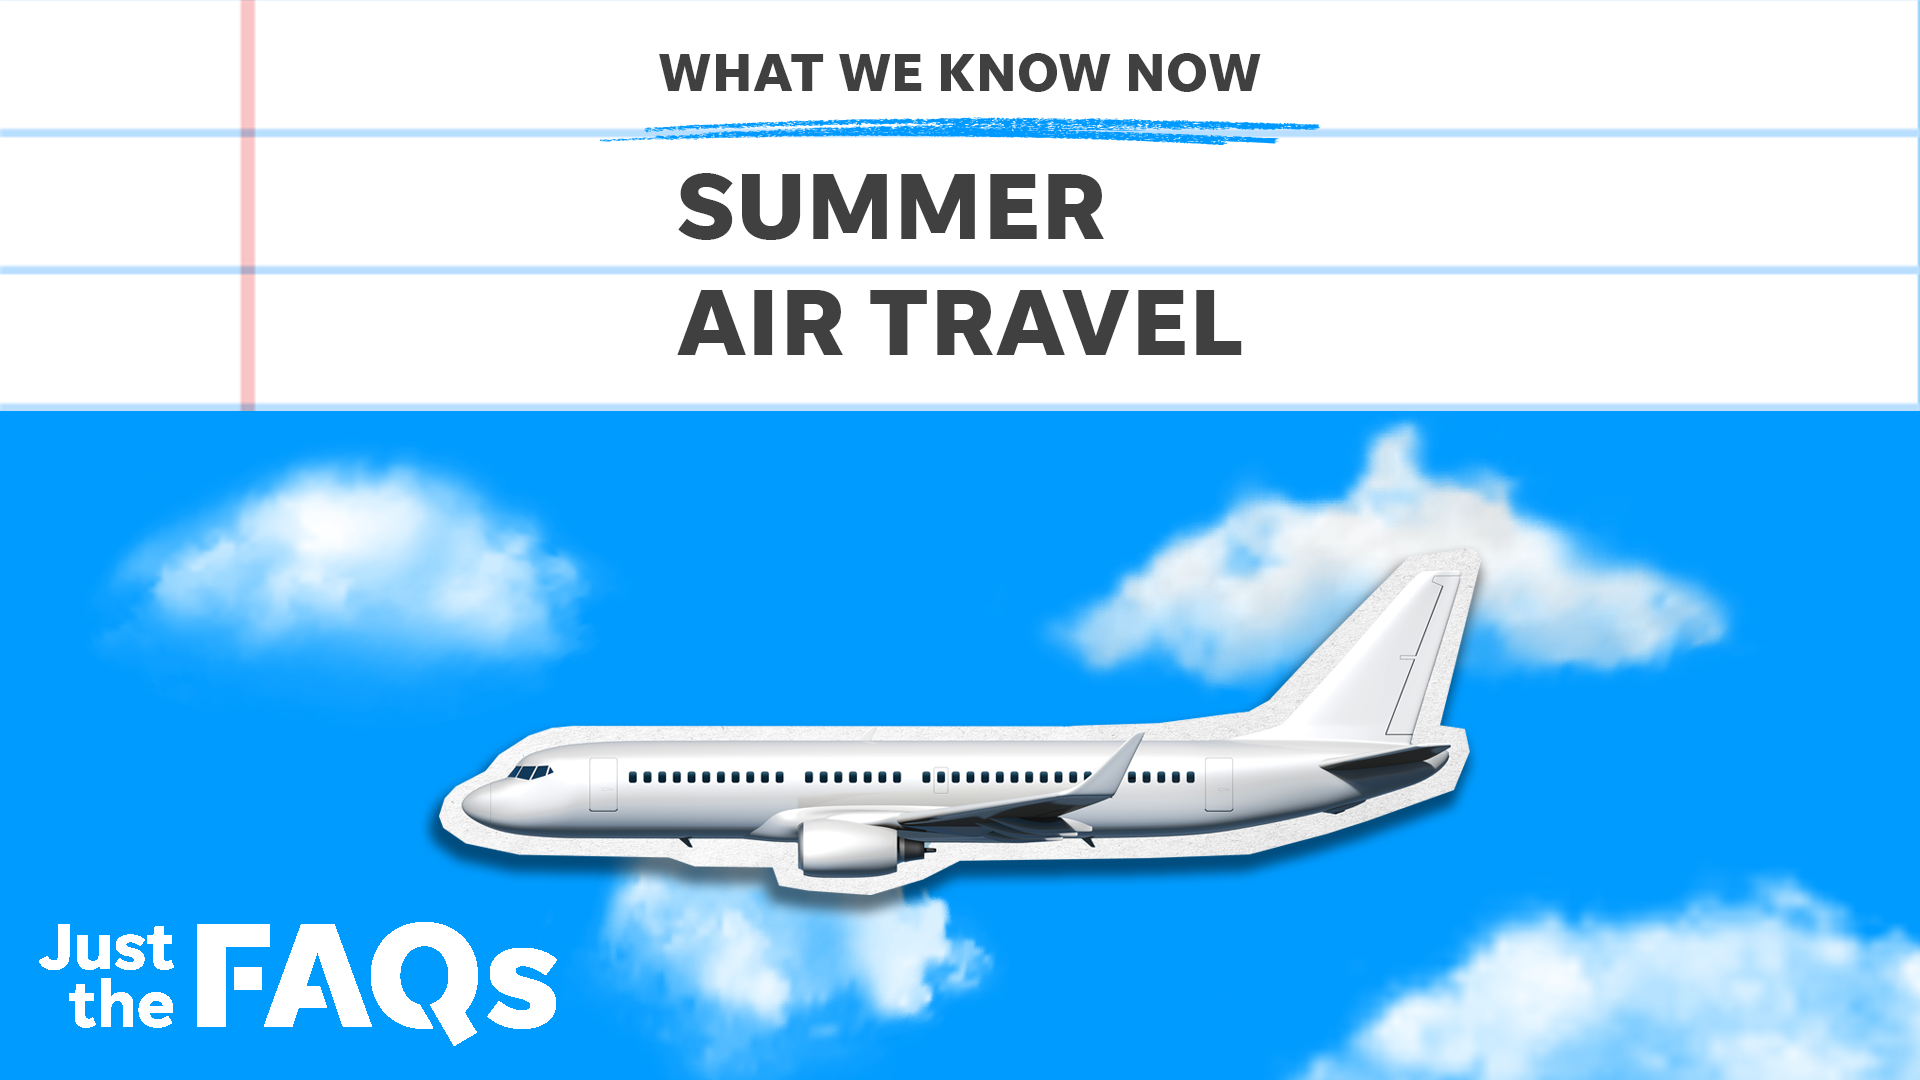 Air travel is surging. If you plan on flying this summer, here's what you need to know.